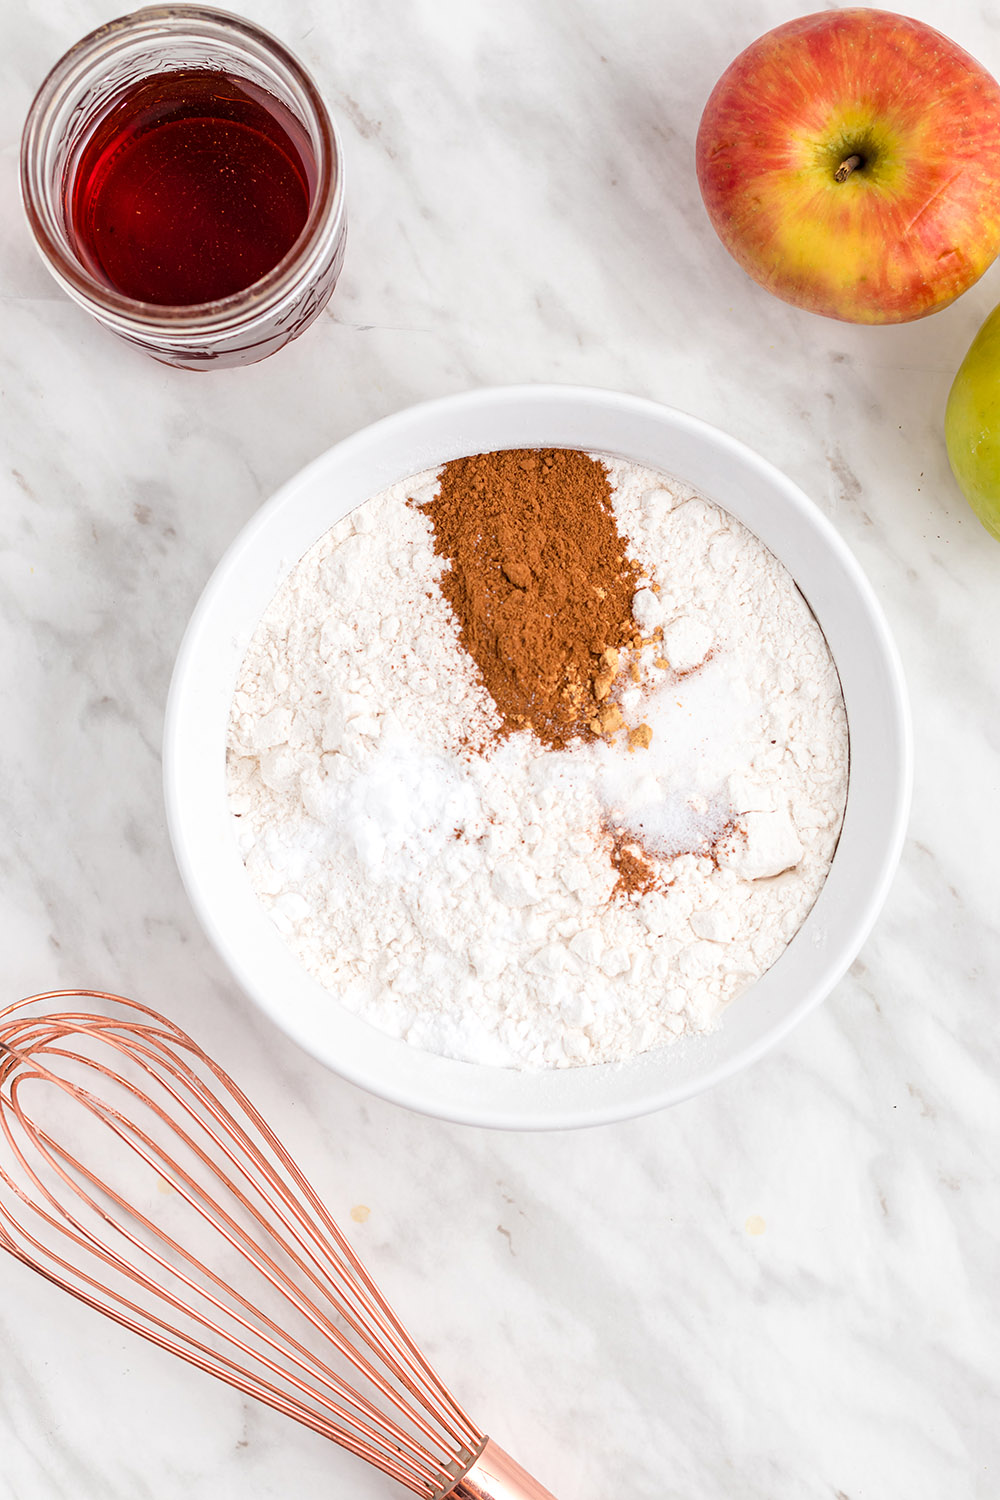 Flour and cinnamon in a bowl.